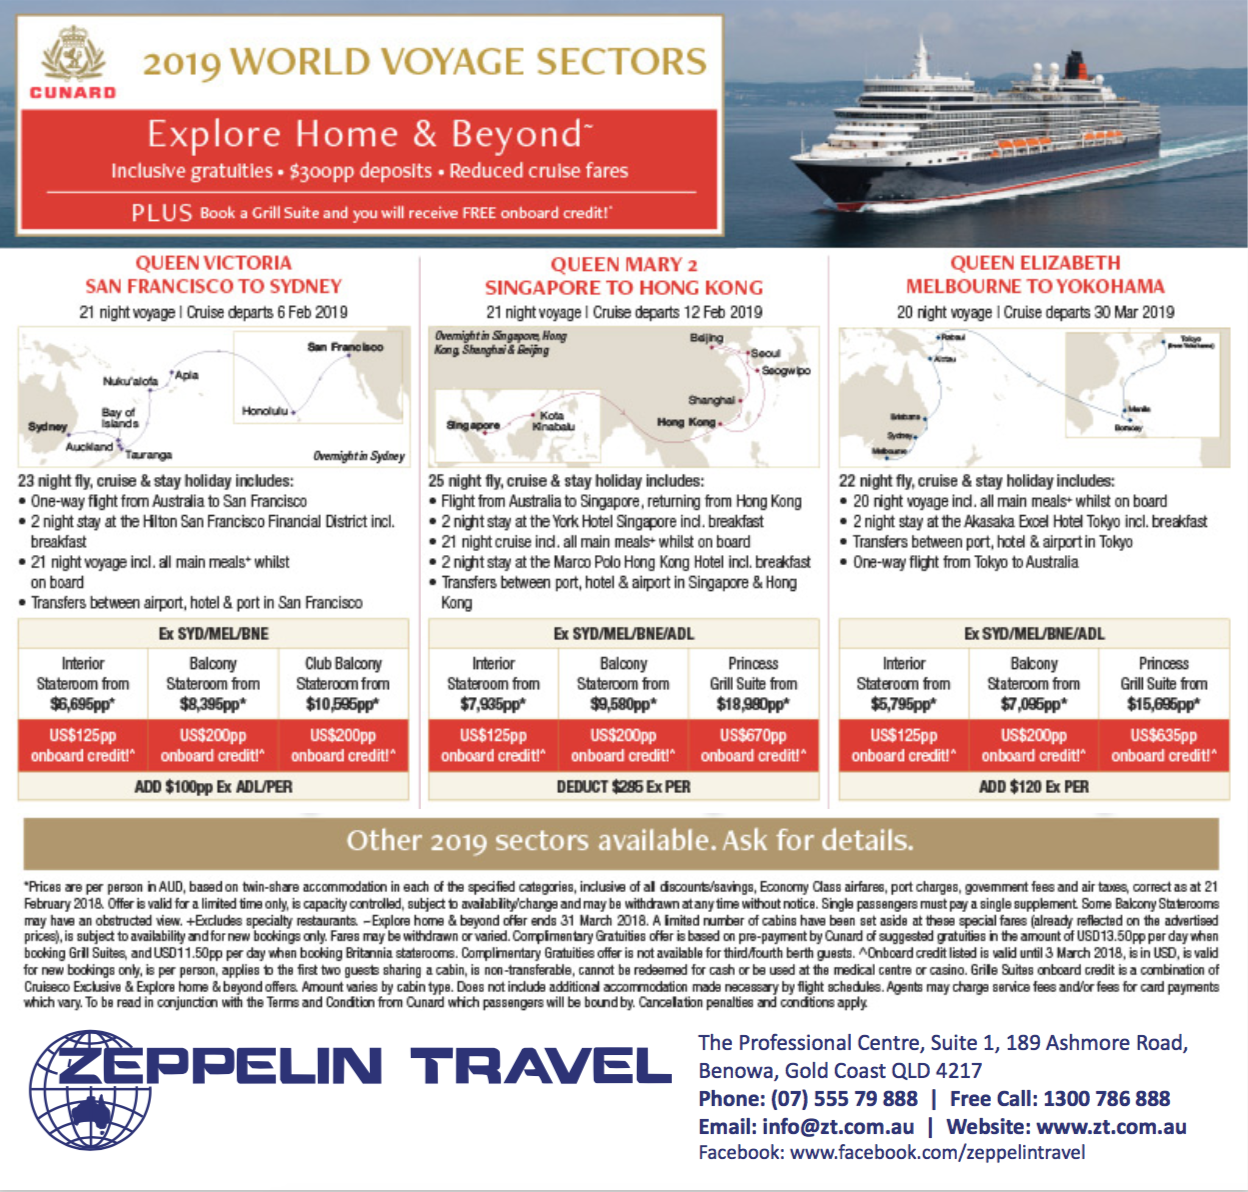 2019 World Voyage Sectors